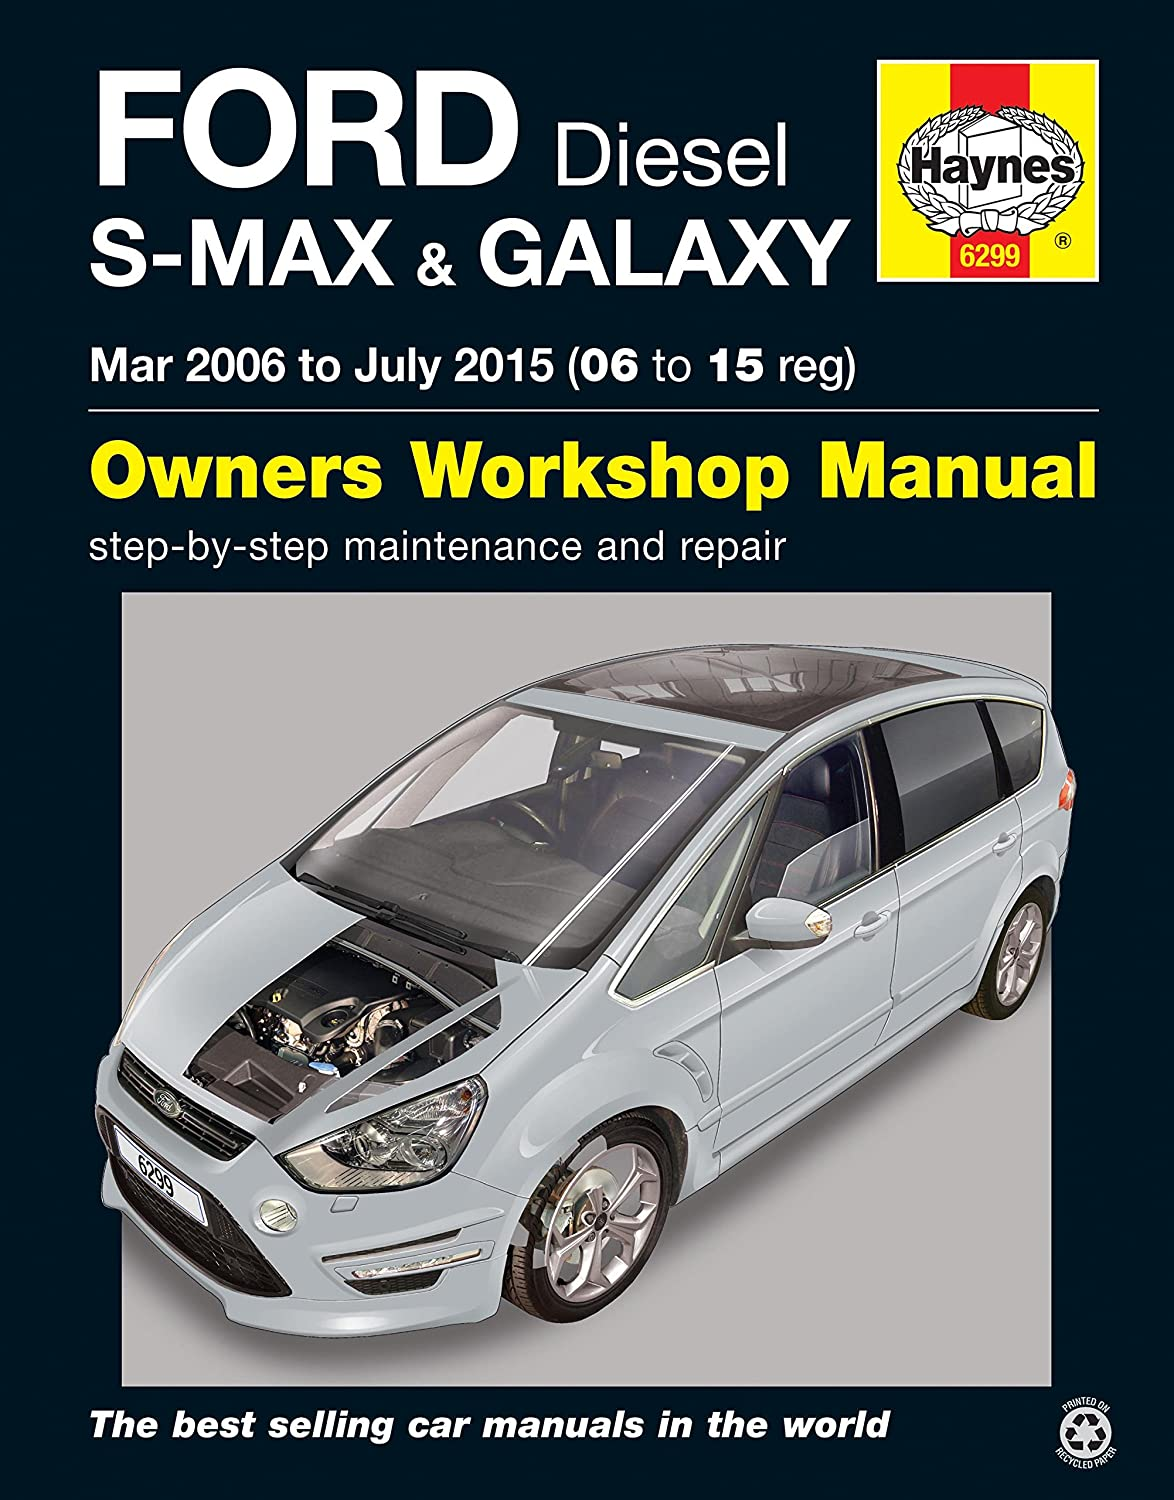 ford s max galaxy diesel owners workshop manual 2006 2015 amazon rh amazon co uk